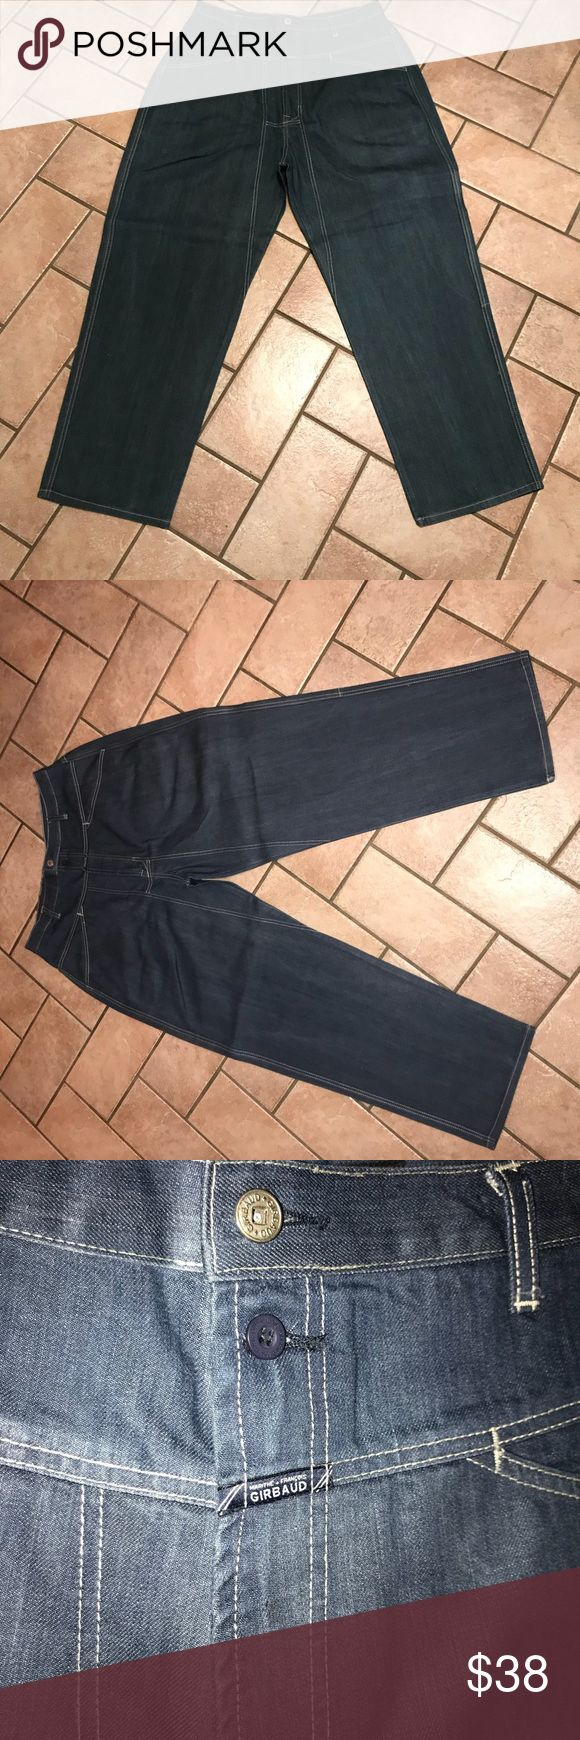 Men's Girbaud Jeans Brand X Authentic Fit Men's Girbaud Jeans size 34 waist x 31 inseam length  Medium wash, baggy fit Jeans are just like new, just brought to cleaners and starched as well! Jeans Relaxed